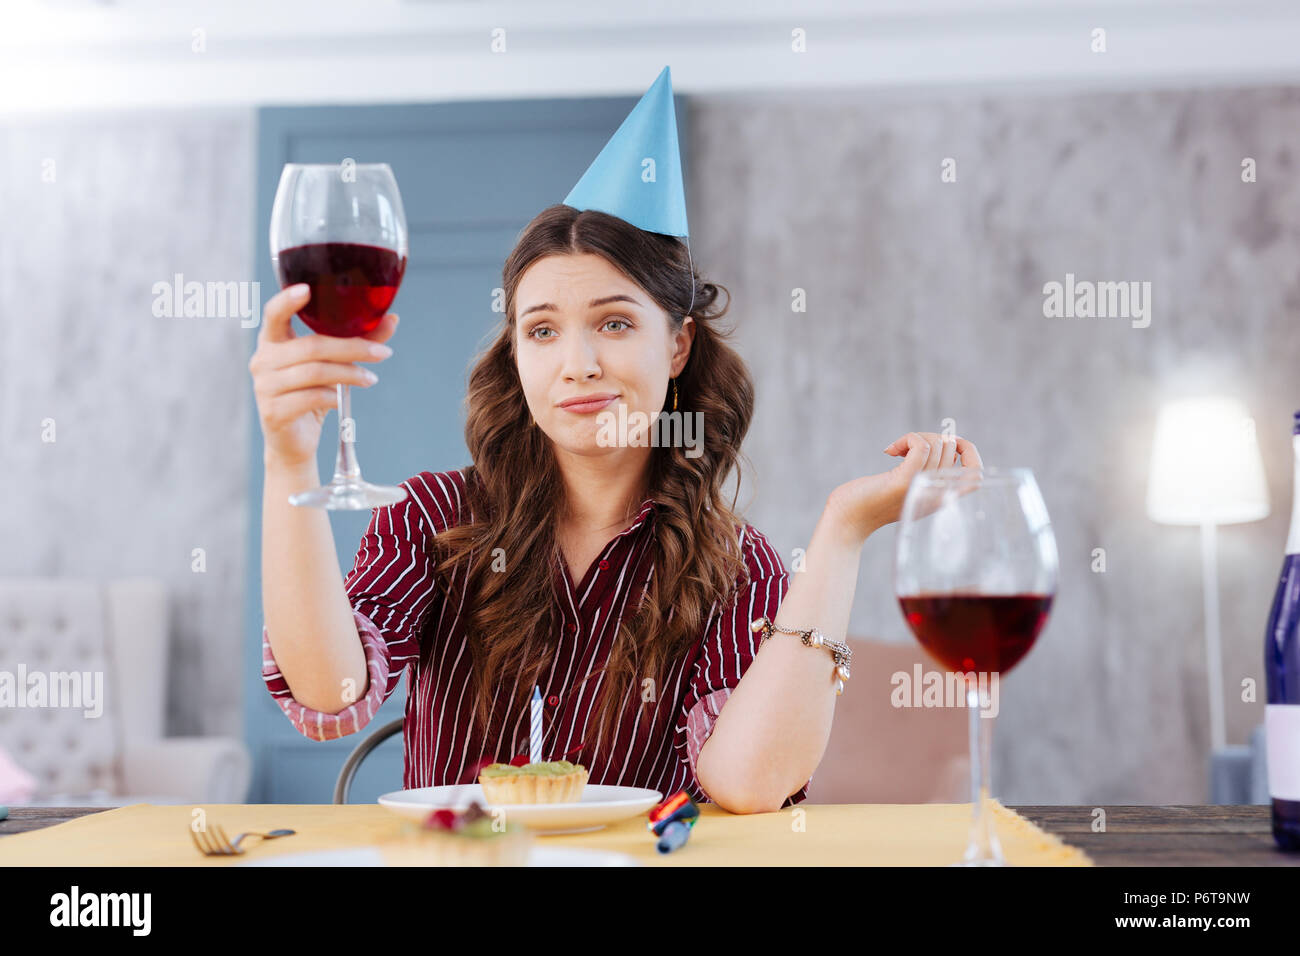 Woman making funny face while attending birthday party - Stock Image